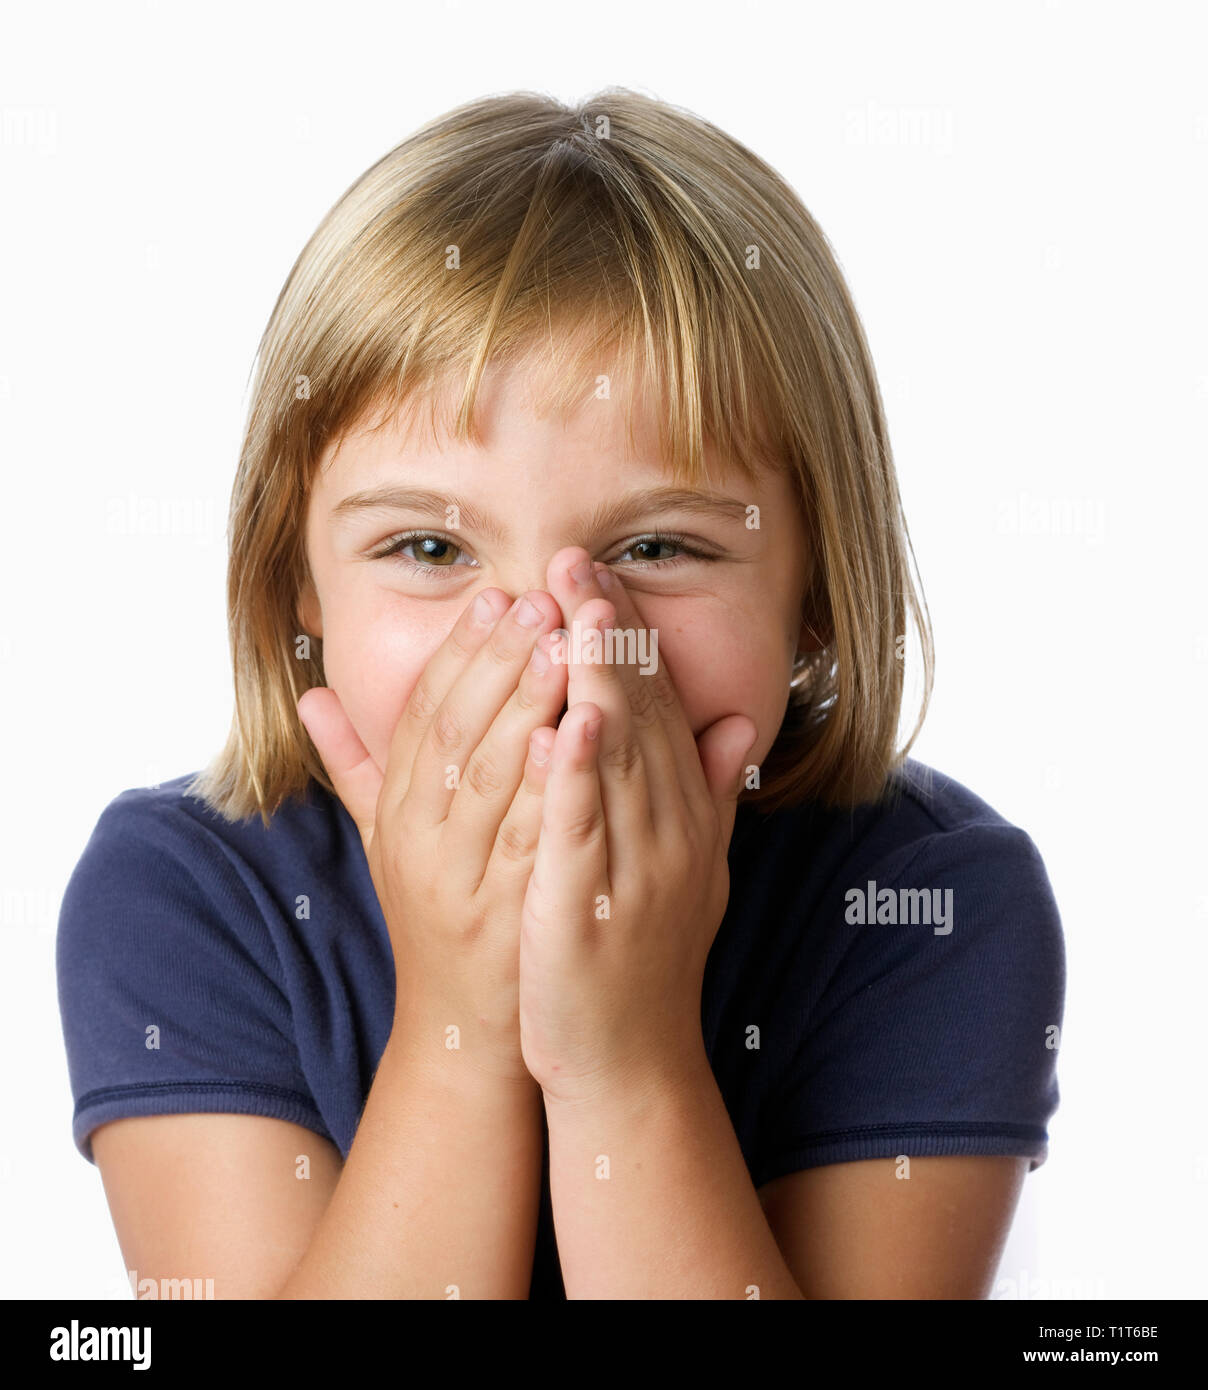 Blonde 7 year-old girl laughing with hands over mouth - Stock Image